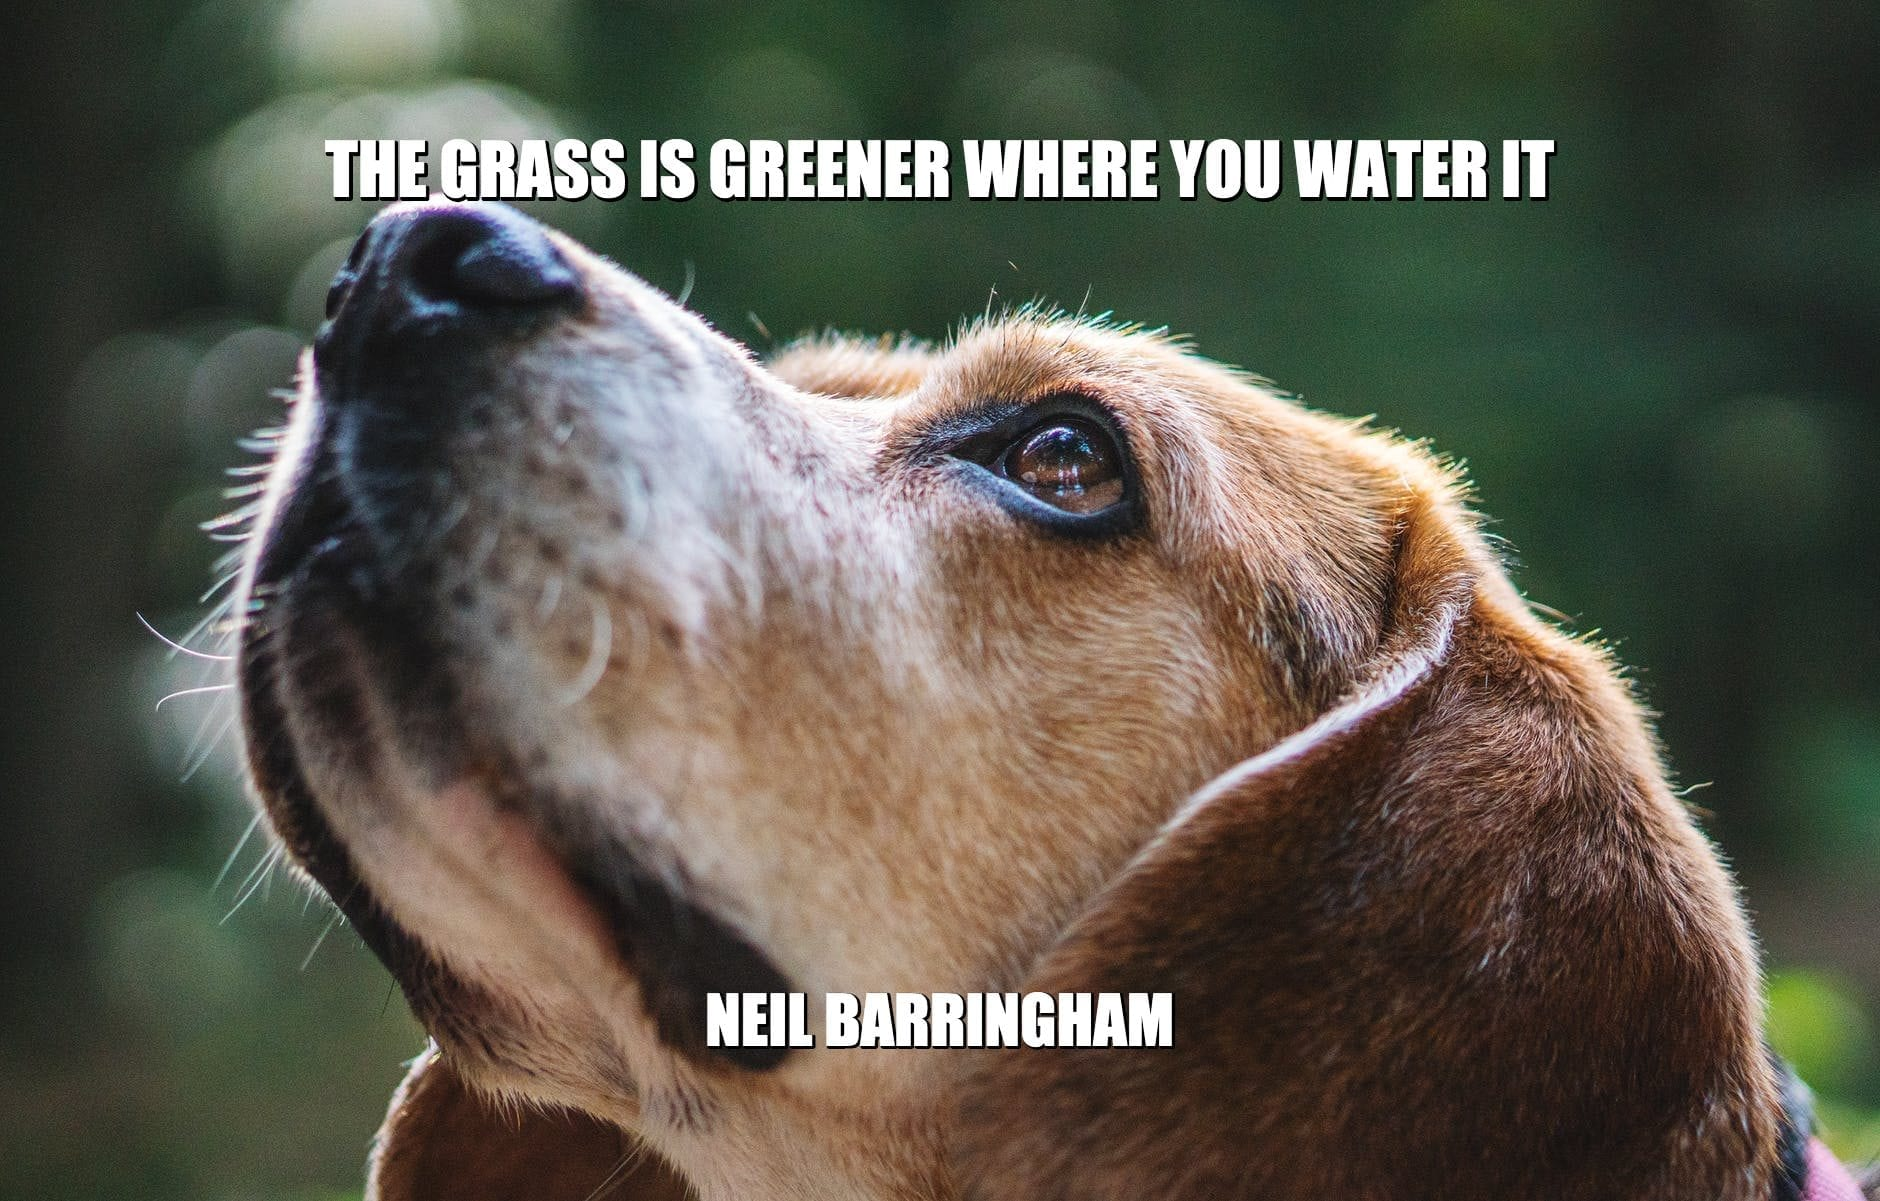 Daily Quotes: The Grass is Greener Where You Water It petworldglobal.com